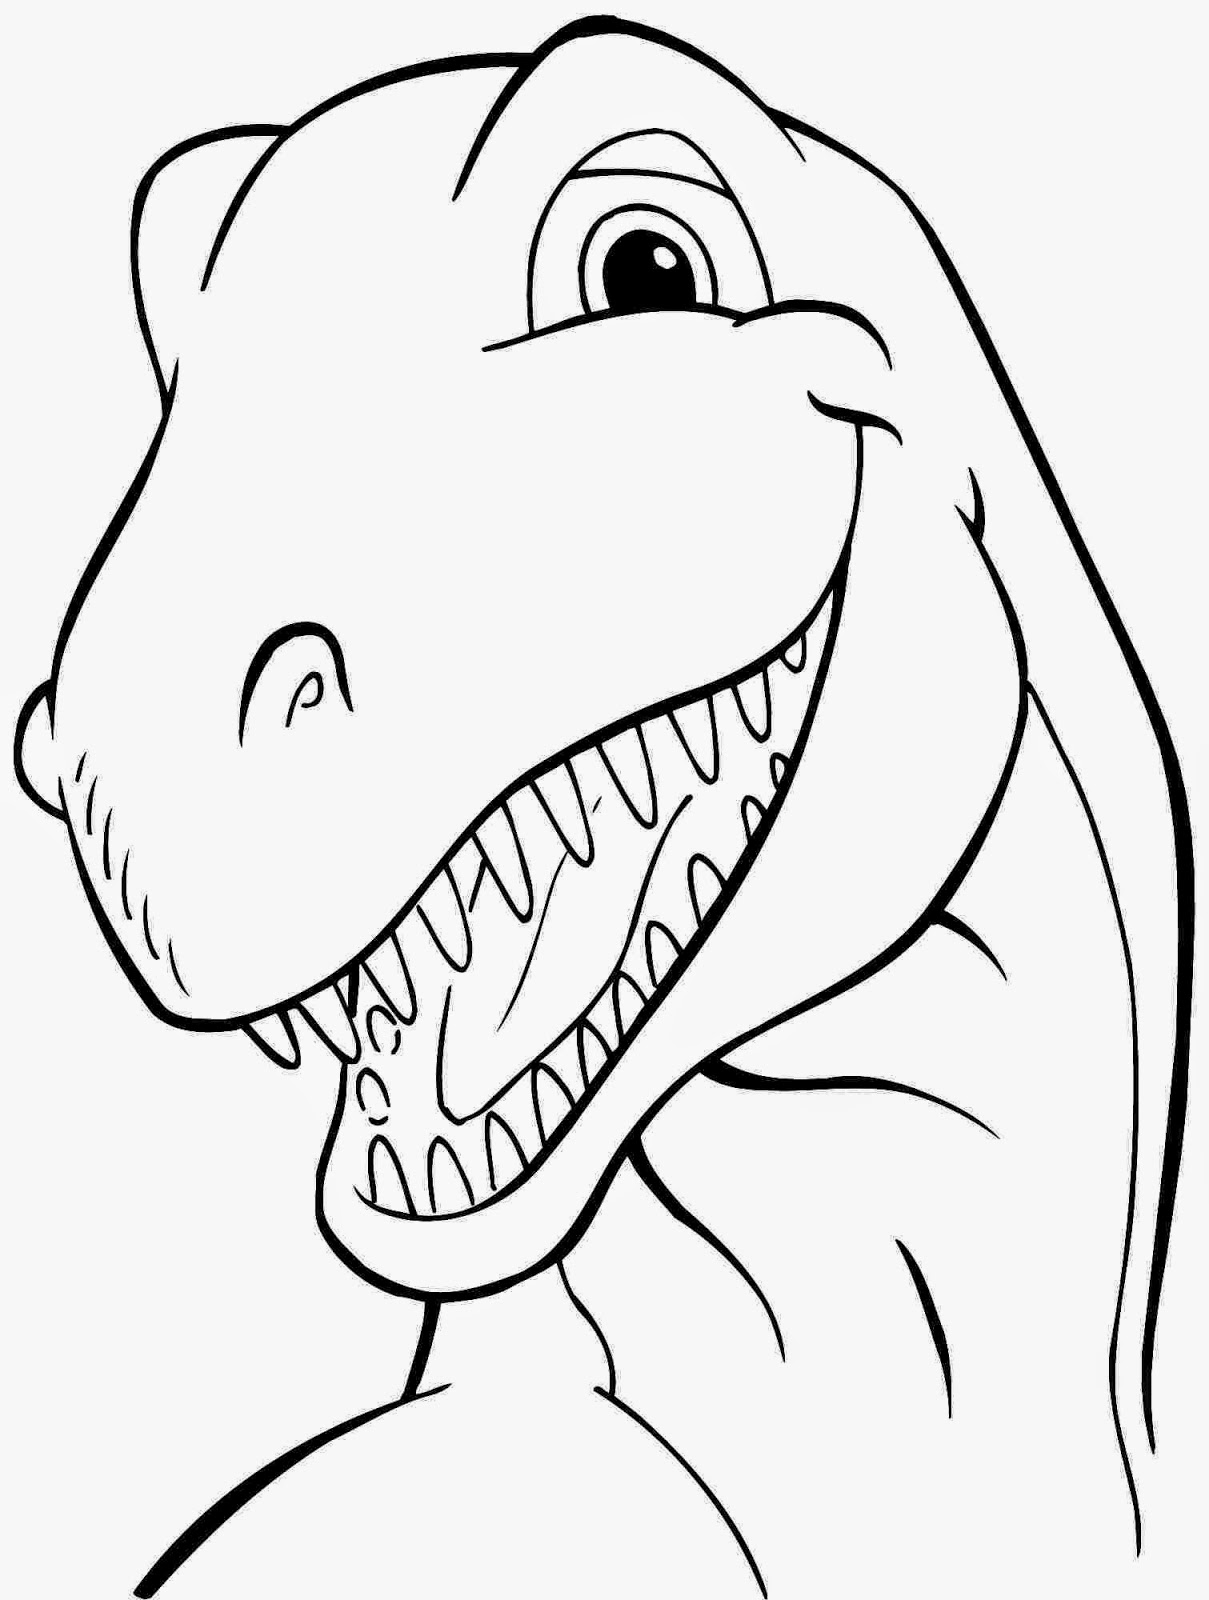 coloring dinosaur free printables baby dinosaur coloring pages to download and print for free free coloring printables dinosaur